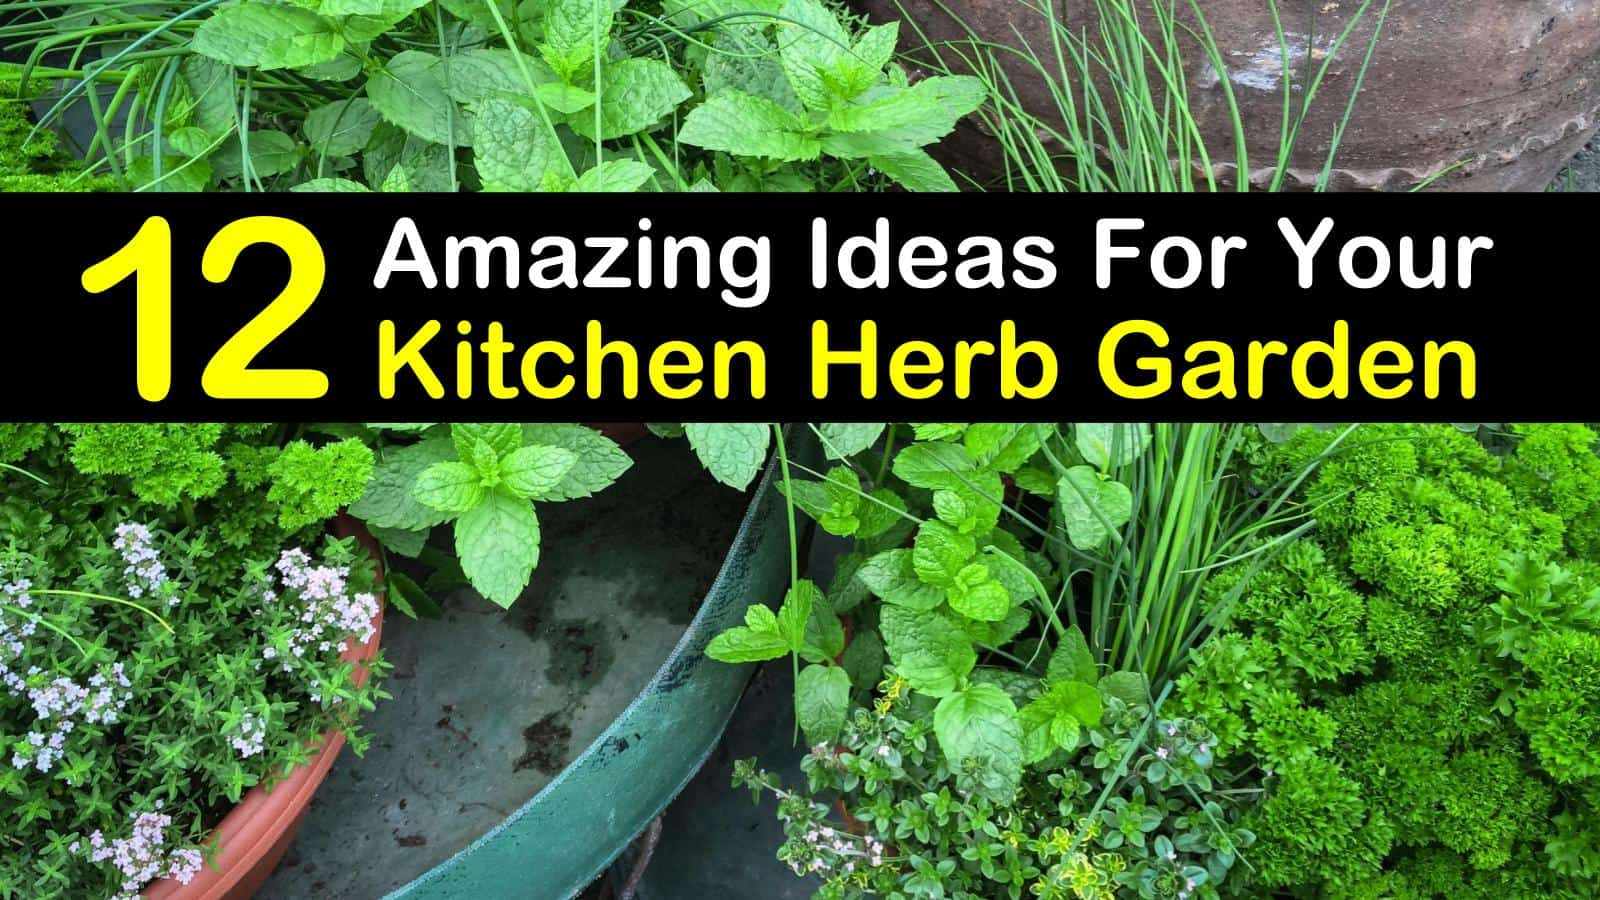 kitchen herb garden titleimg1